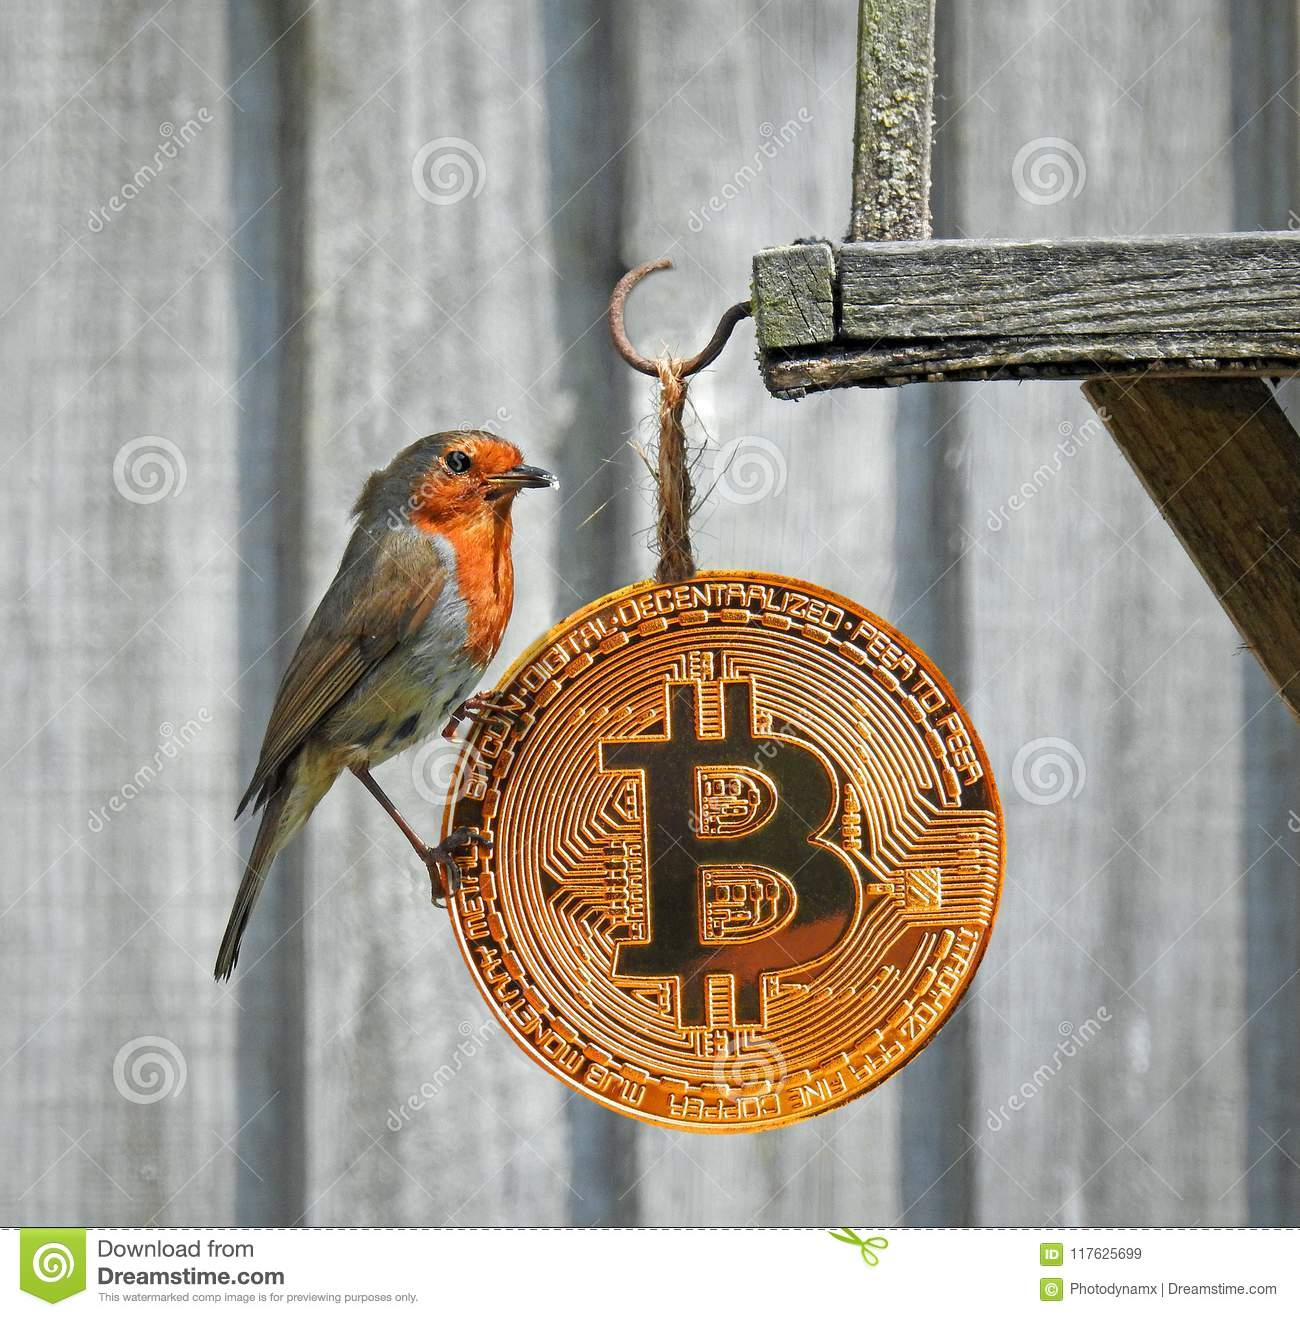 Bitcoins pictures of birds e games betting